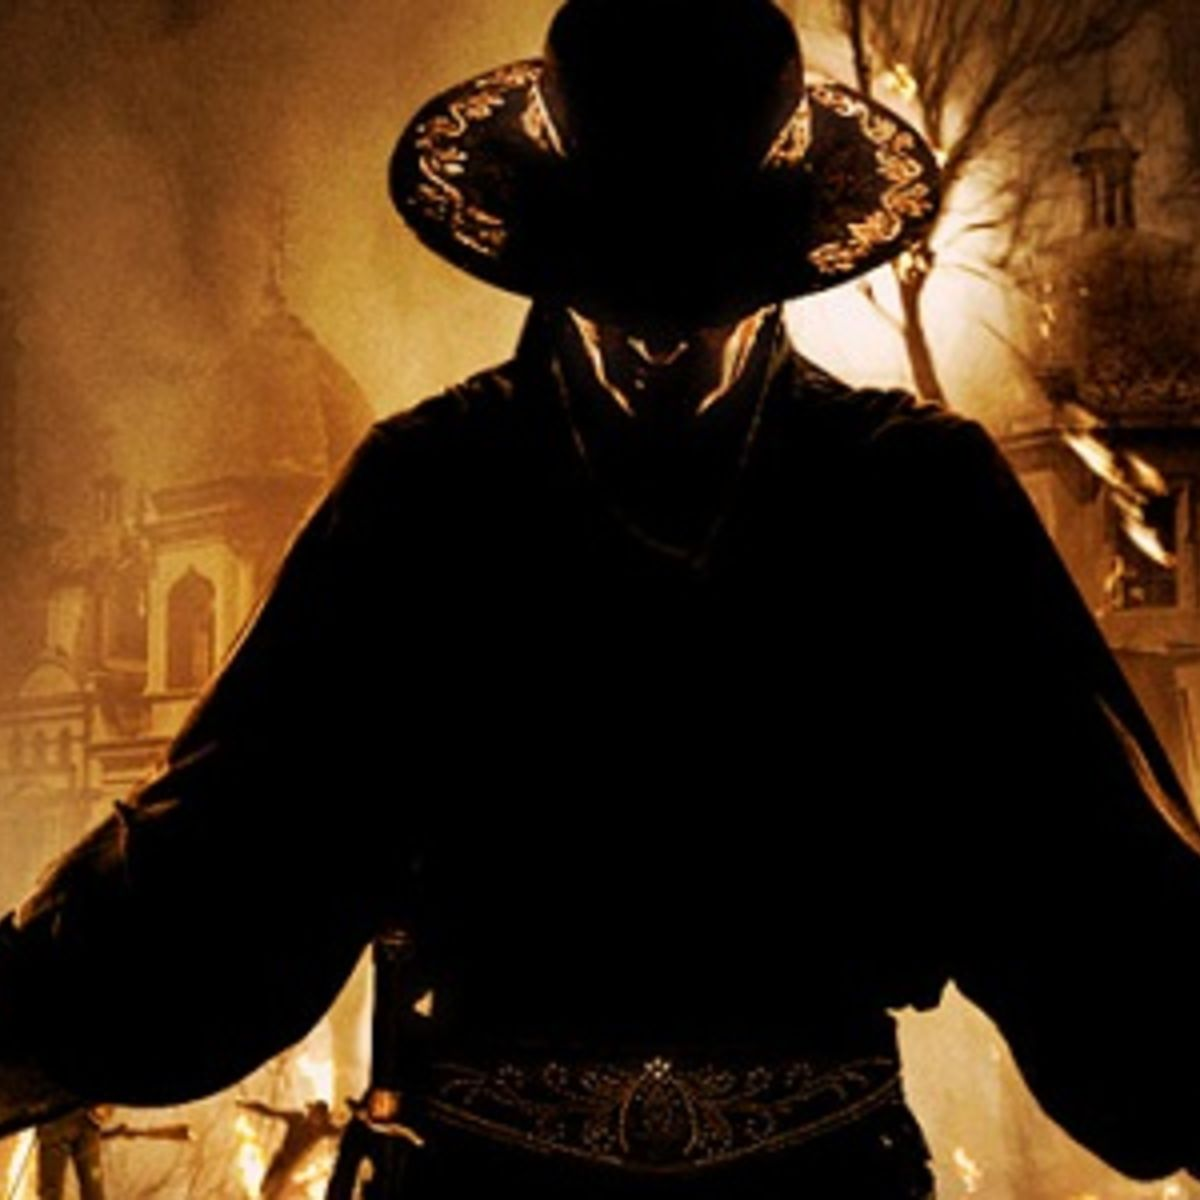 Antonio_Banderas_in_The_Legend_of_Zorro_Wallpaper_2_1024.jpg